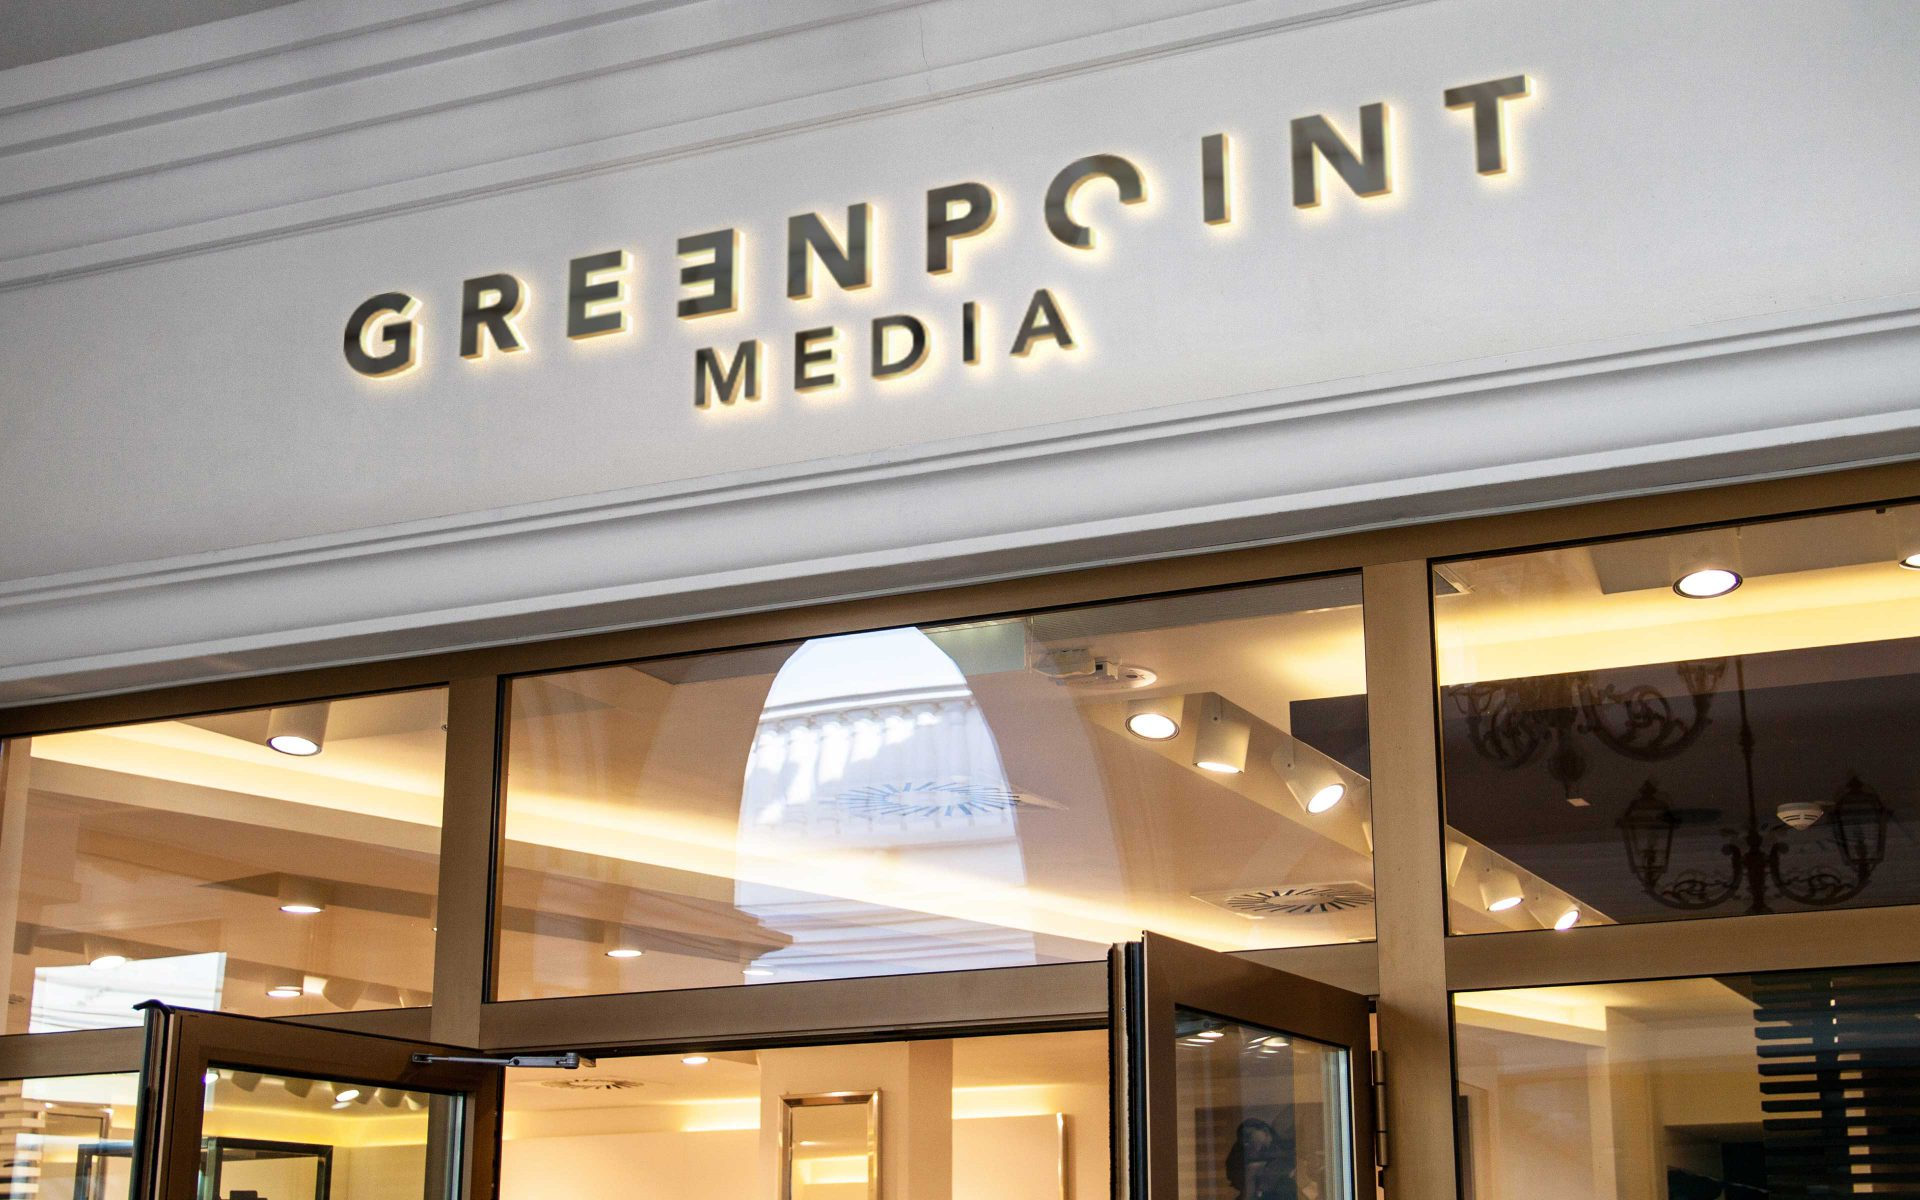 Greenpoint Media PR Head office brand logo and signage by Differ